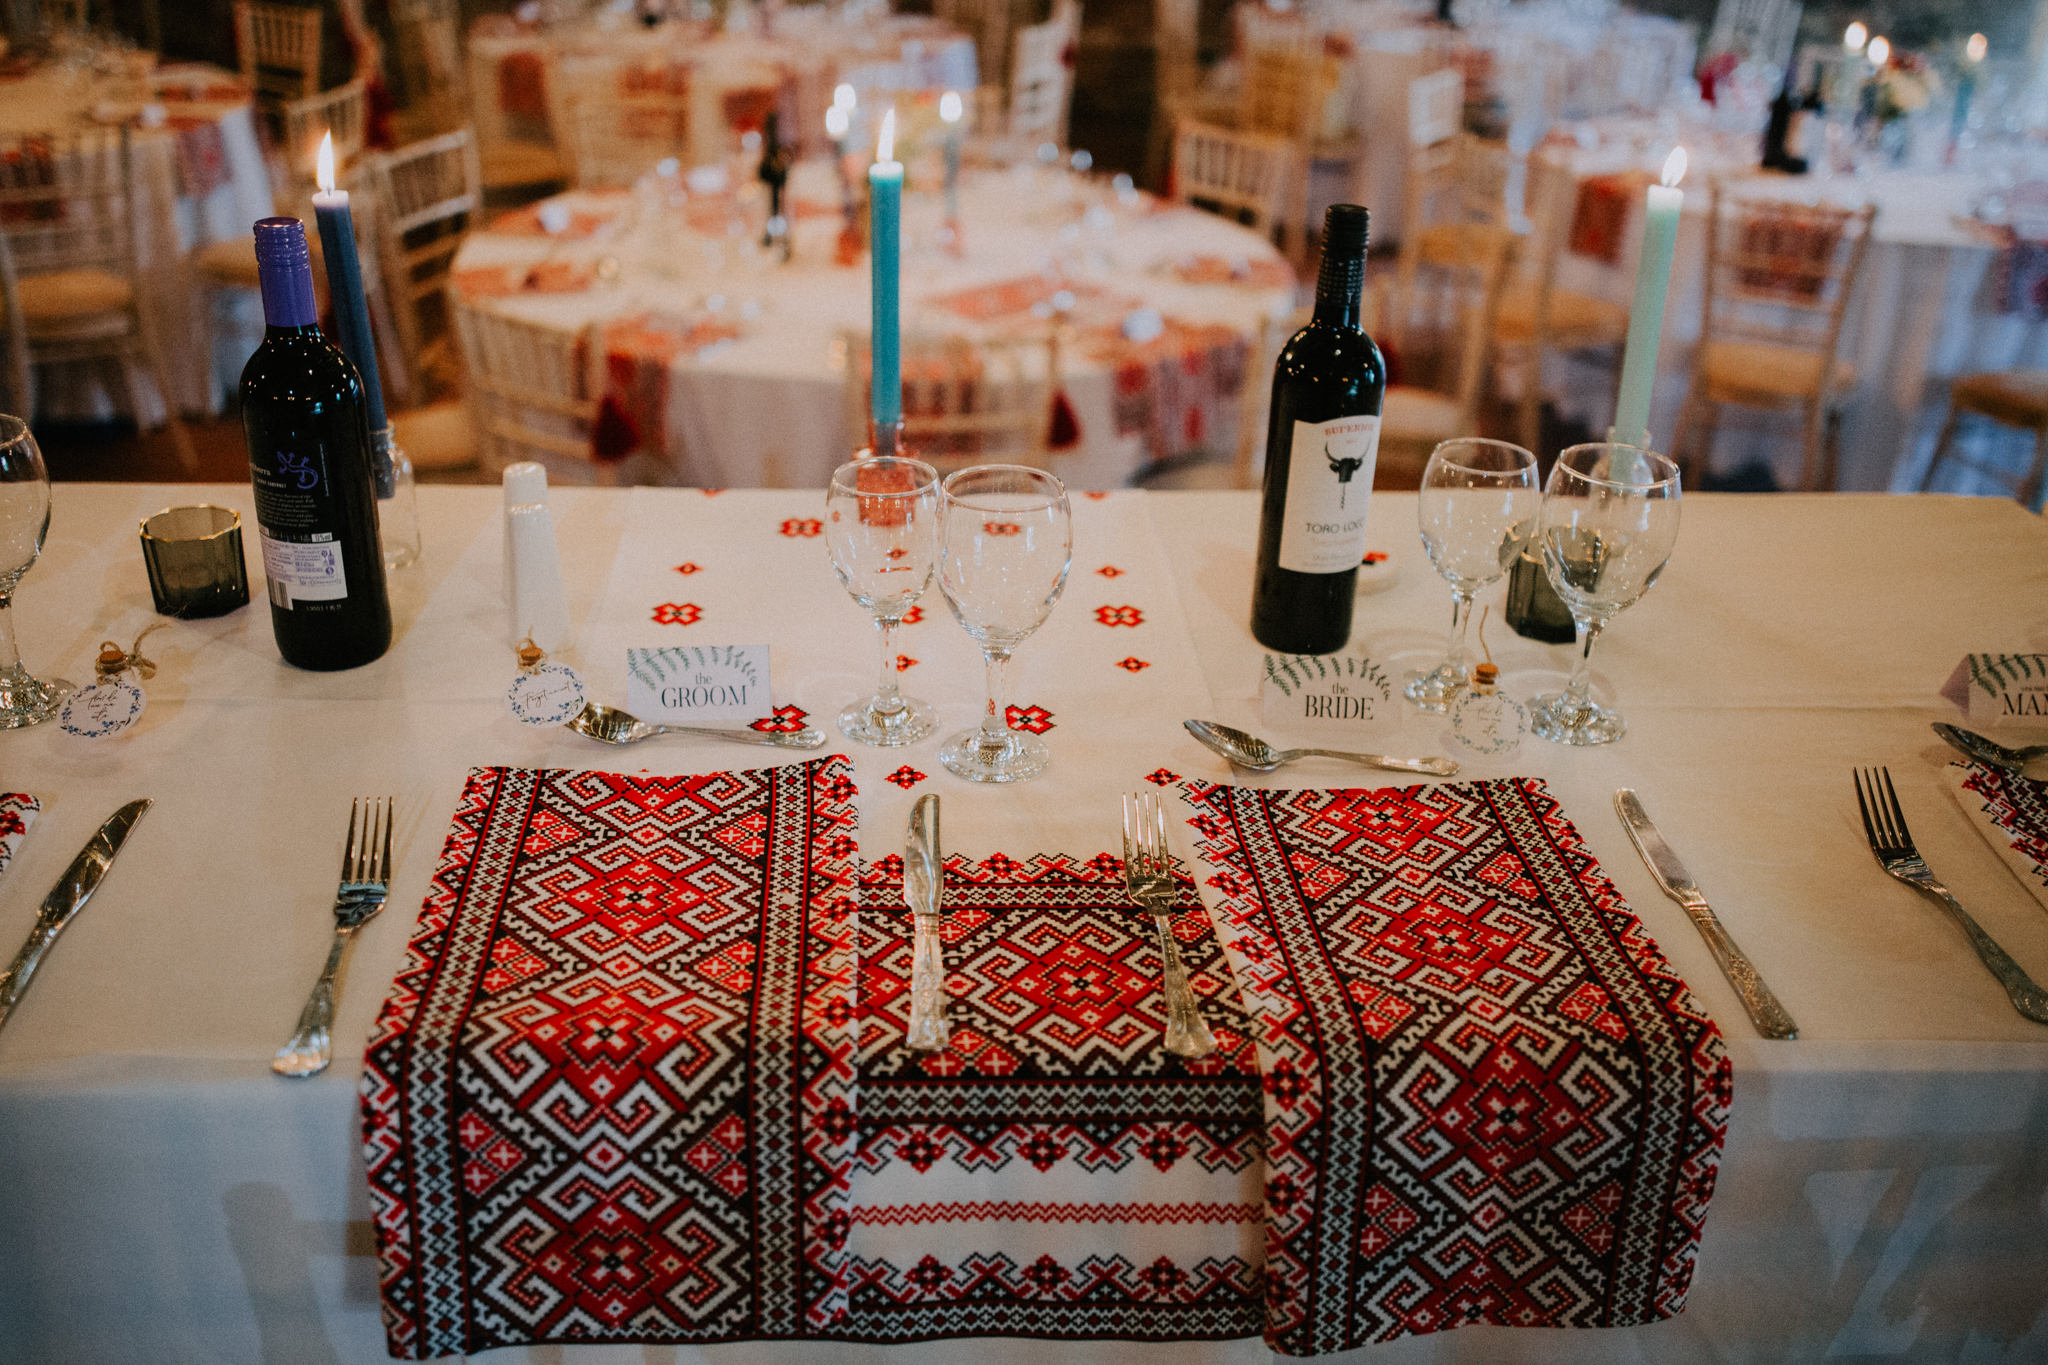 The Romanian traditional stuff on the tables